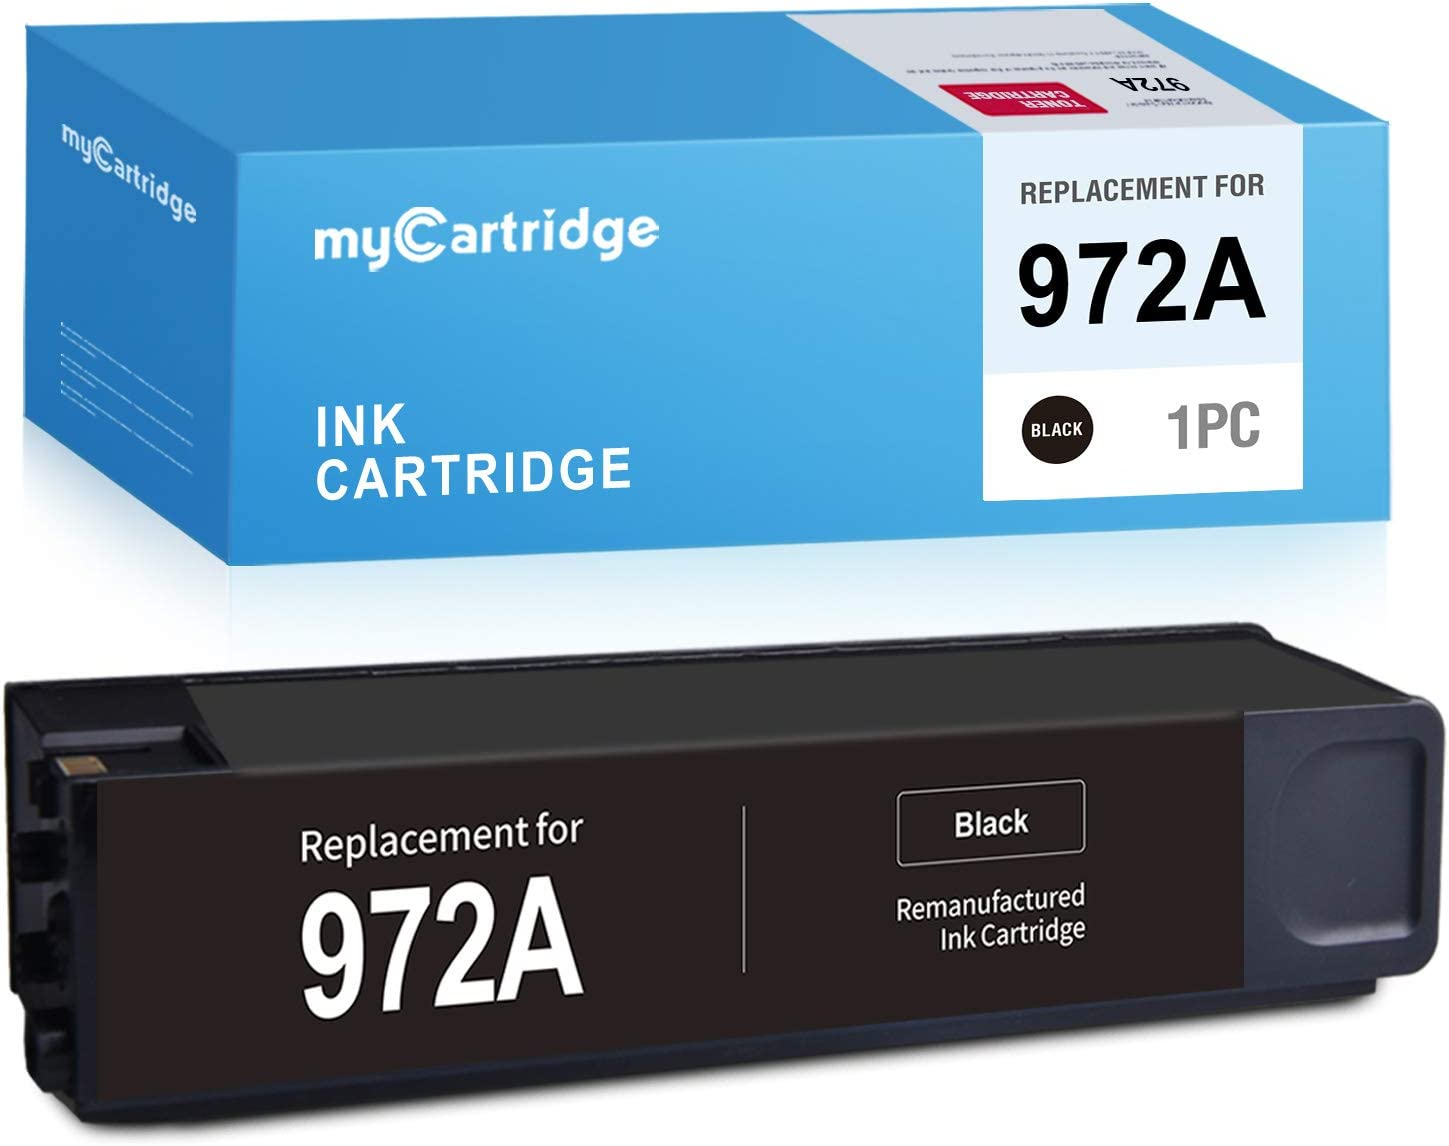 MYCARTRIDGE Remanufactured Ink Cartridge Replacement for HP 972 972A Black use with PageWide Pro 477dw 577dw 377dw 477dn 452dn 452dw 552dw (1-Pack)